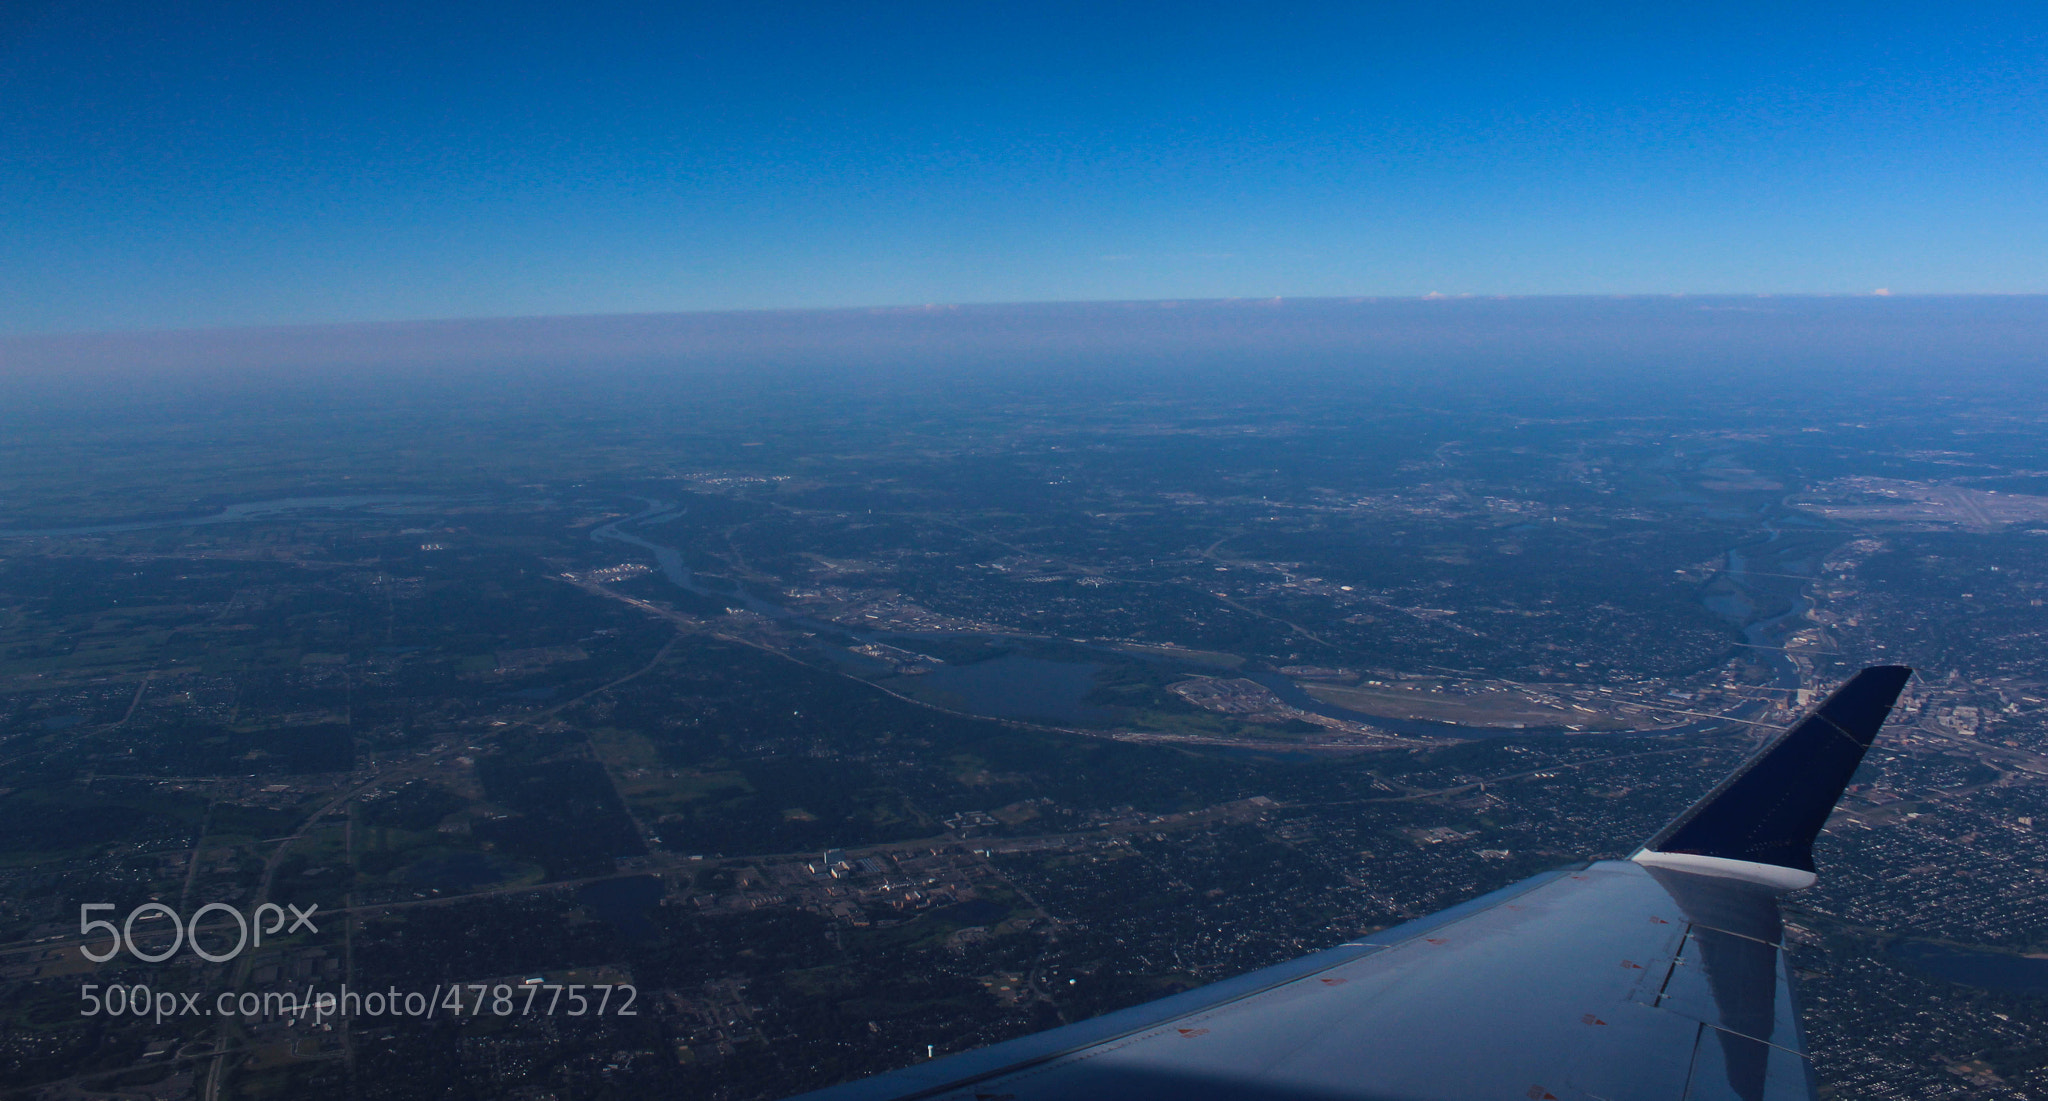 Photograph wing view. by Adriana Vazquez on 500px